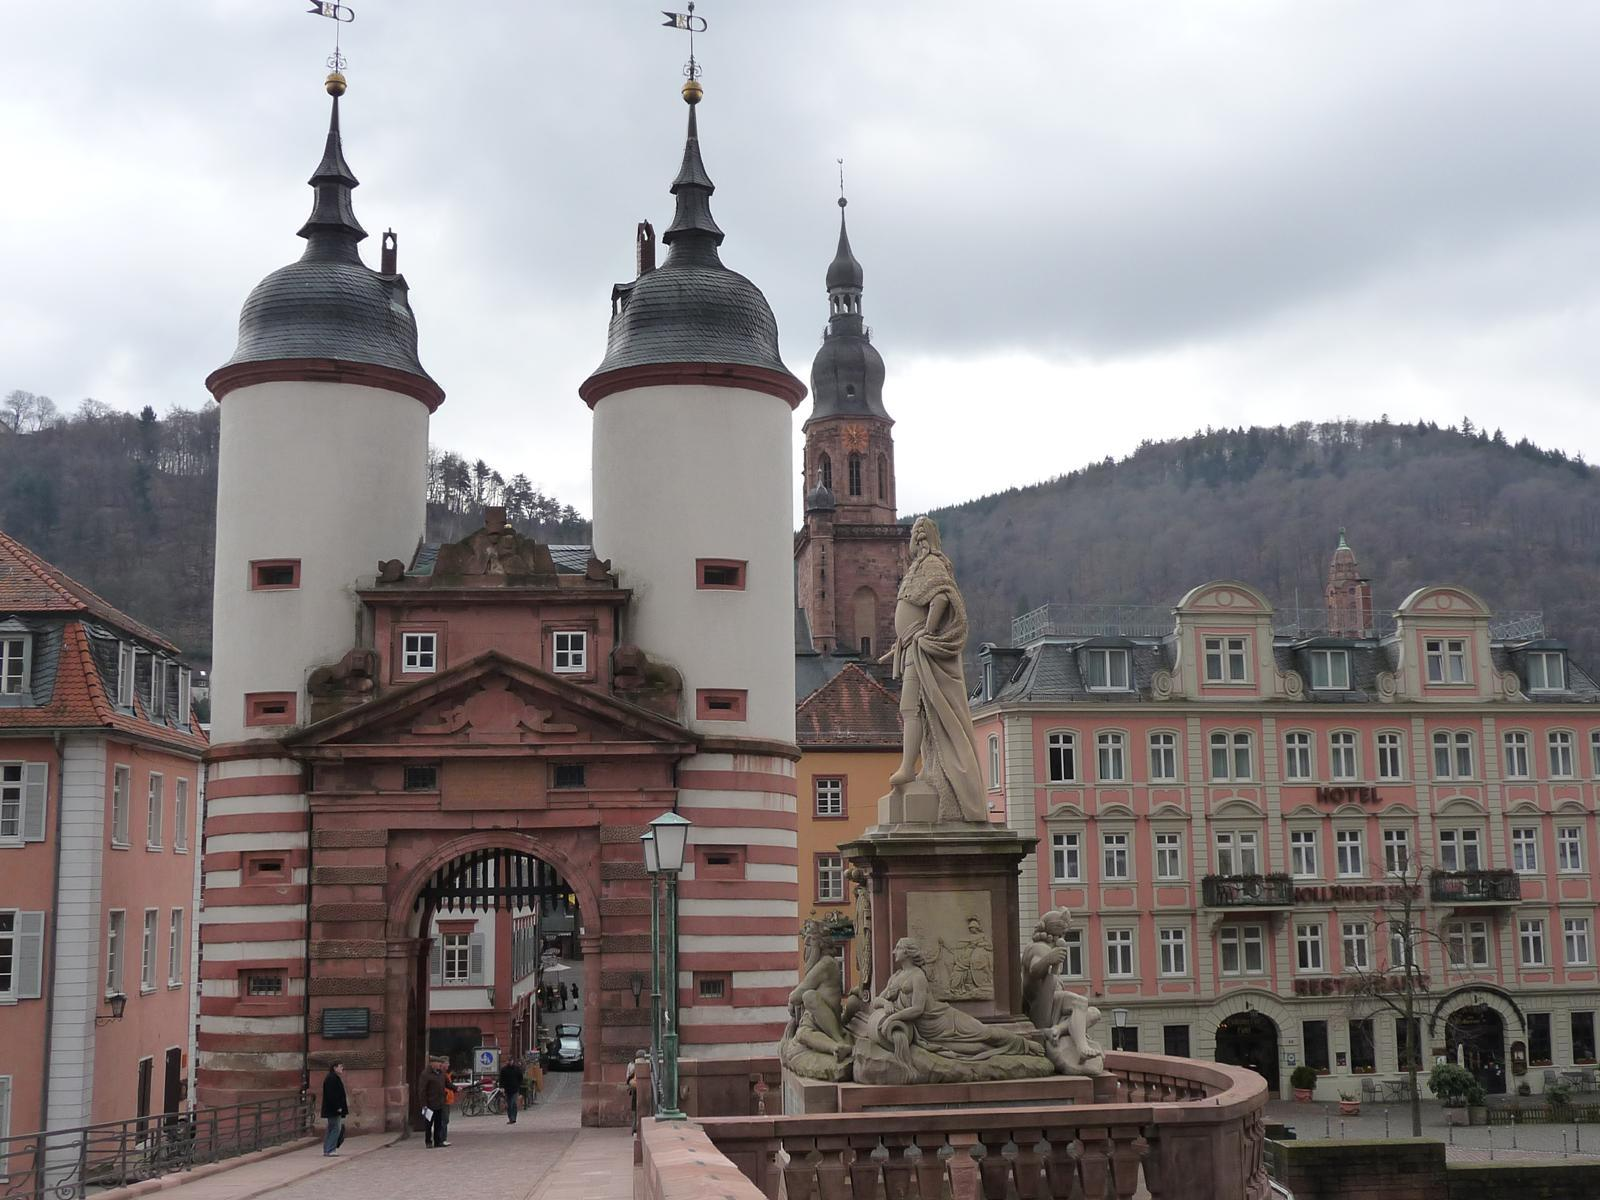 Heidelberg Bridge gate heidelbergbr HD Wallpaper